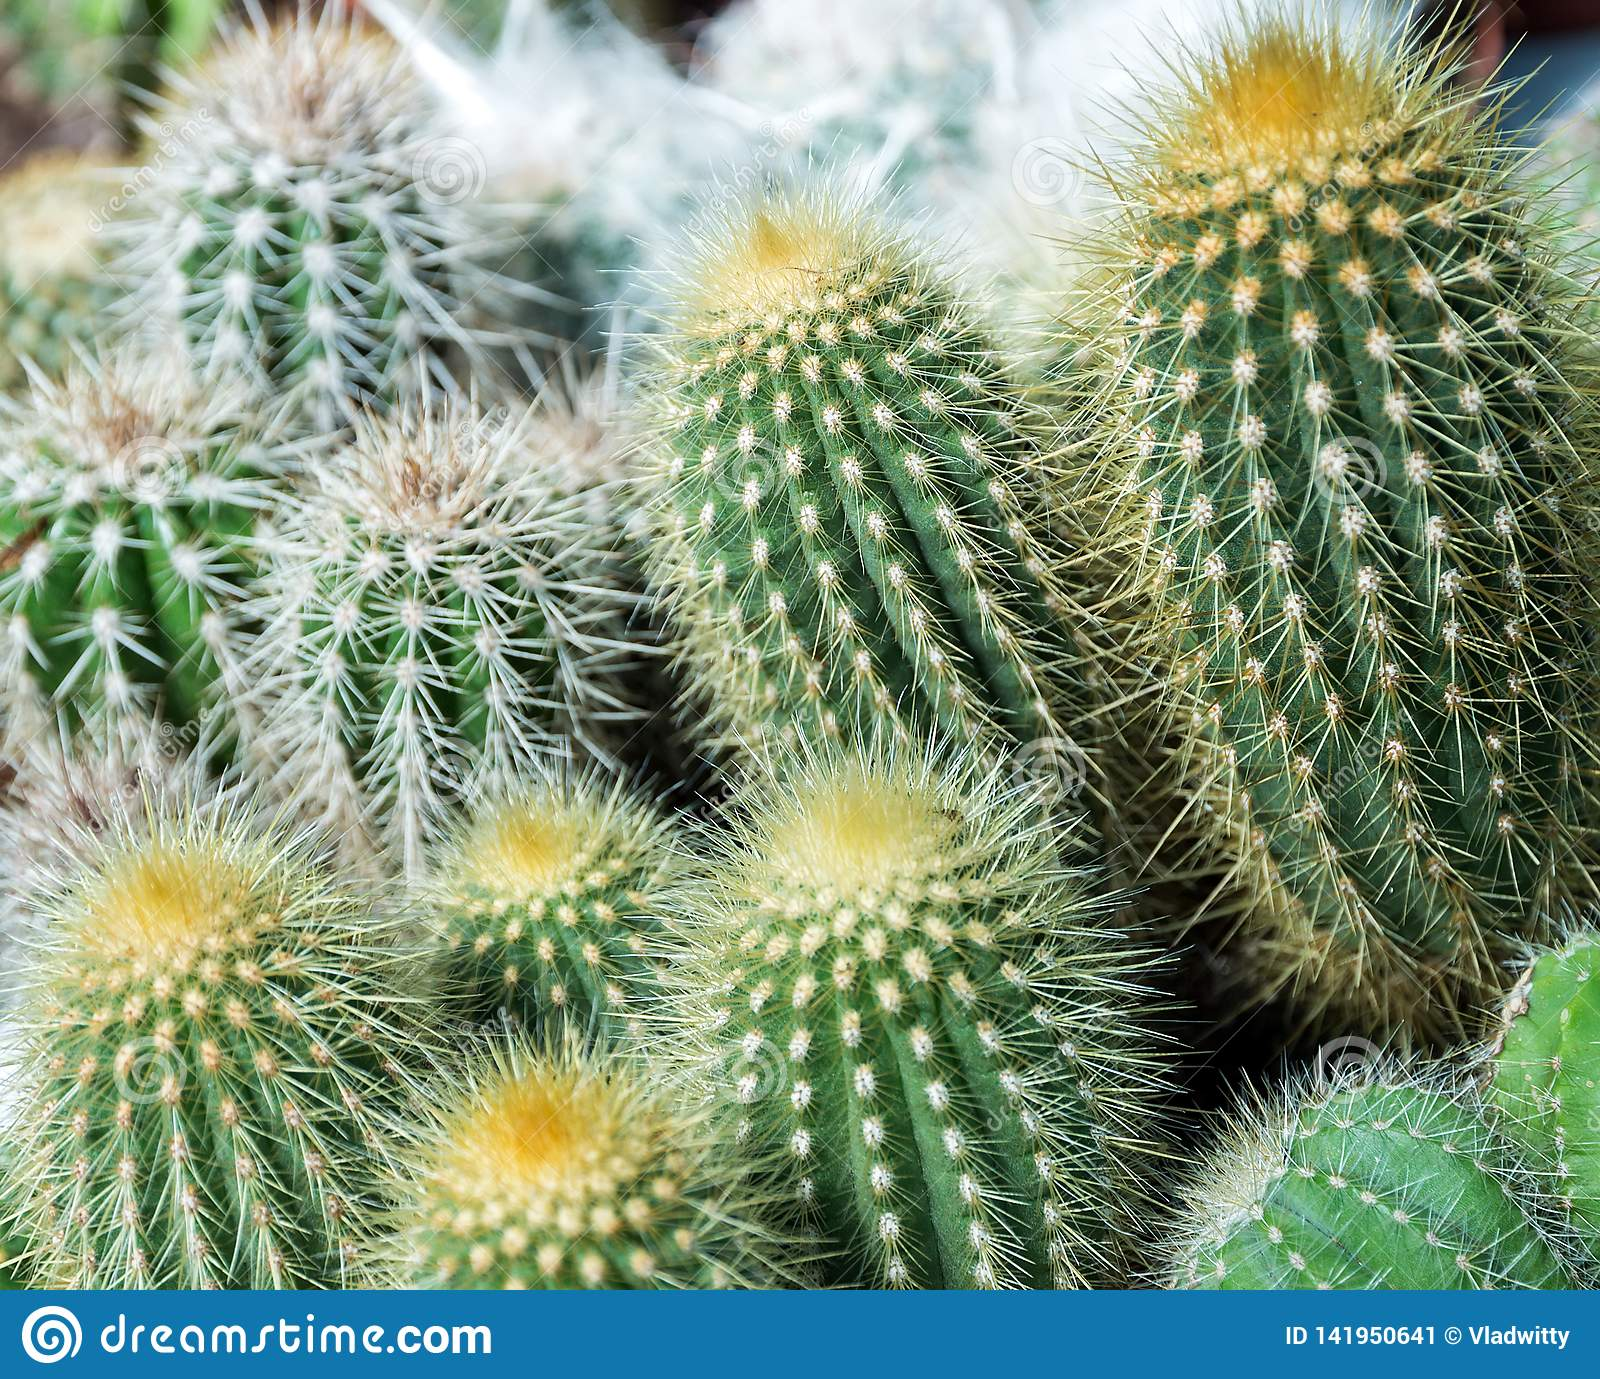 collection in small flowerpots, Cactus top view